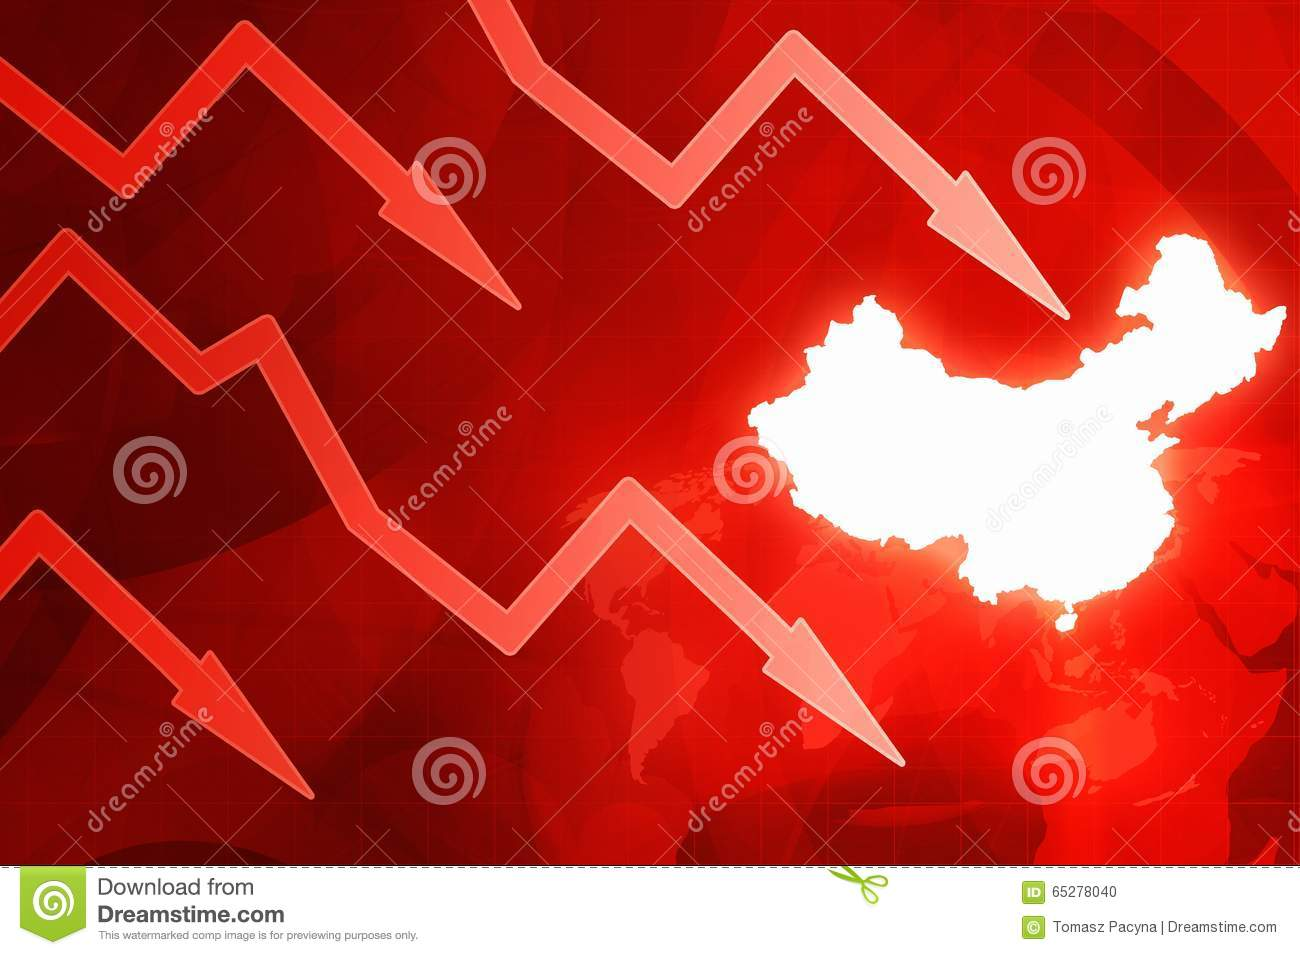 Crisis In China Red Arrows Concept News Background Illustration